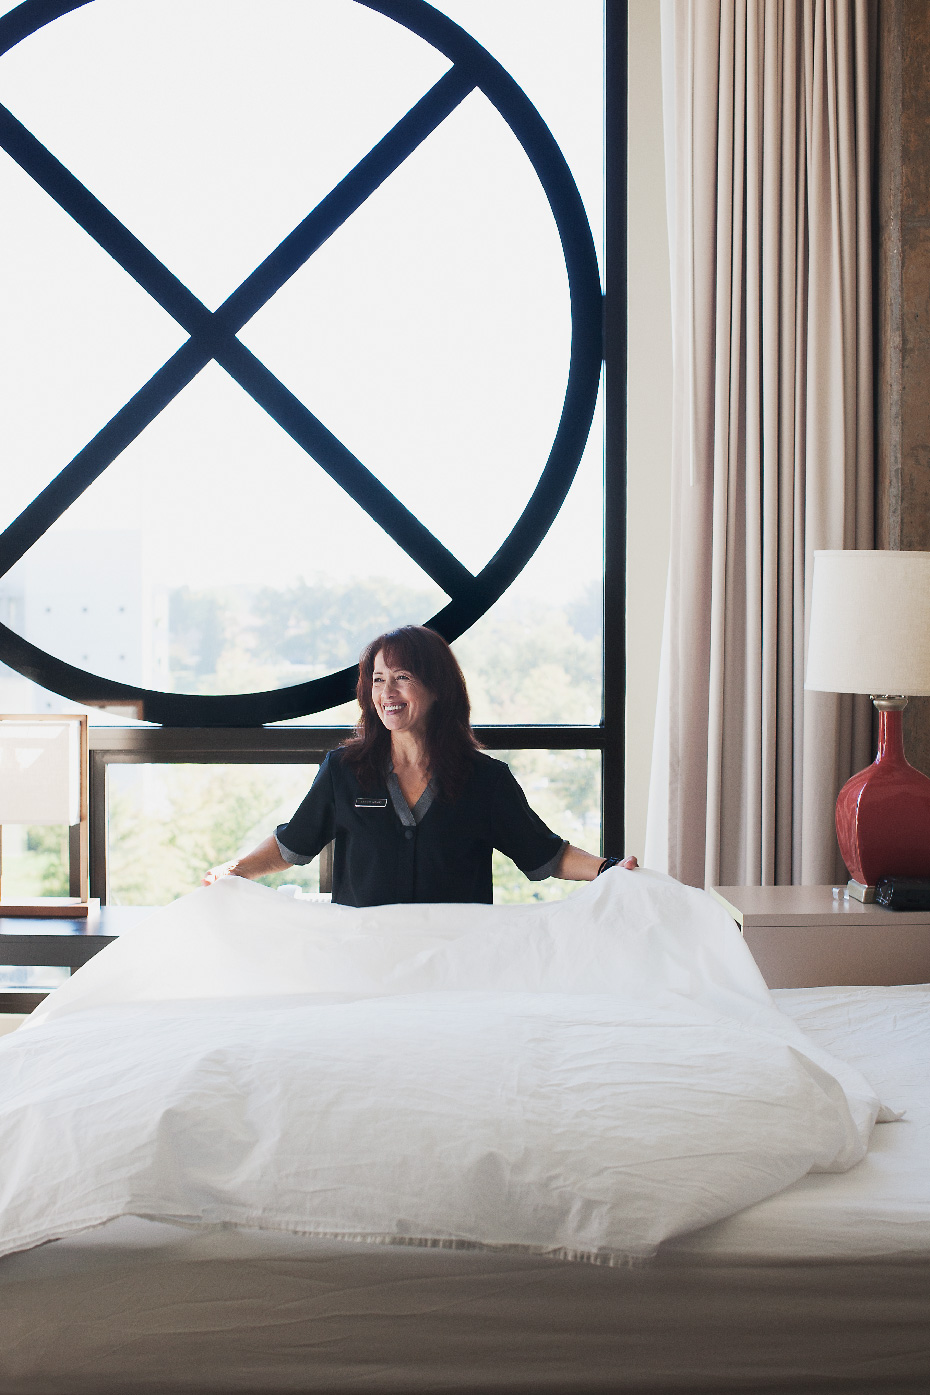 Stacey Van Berkel Photography I Maid making bed at beautiful Proximity Hotel I Greensboro, North Carolina